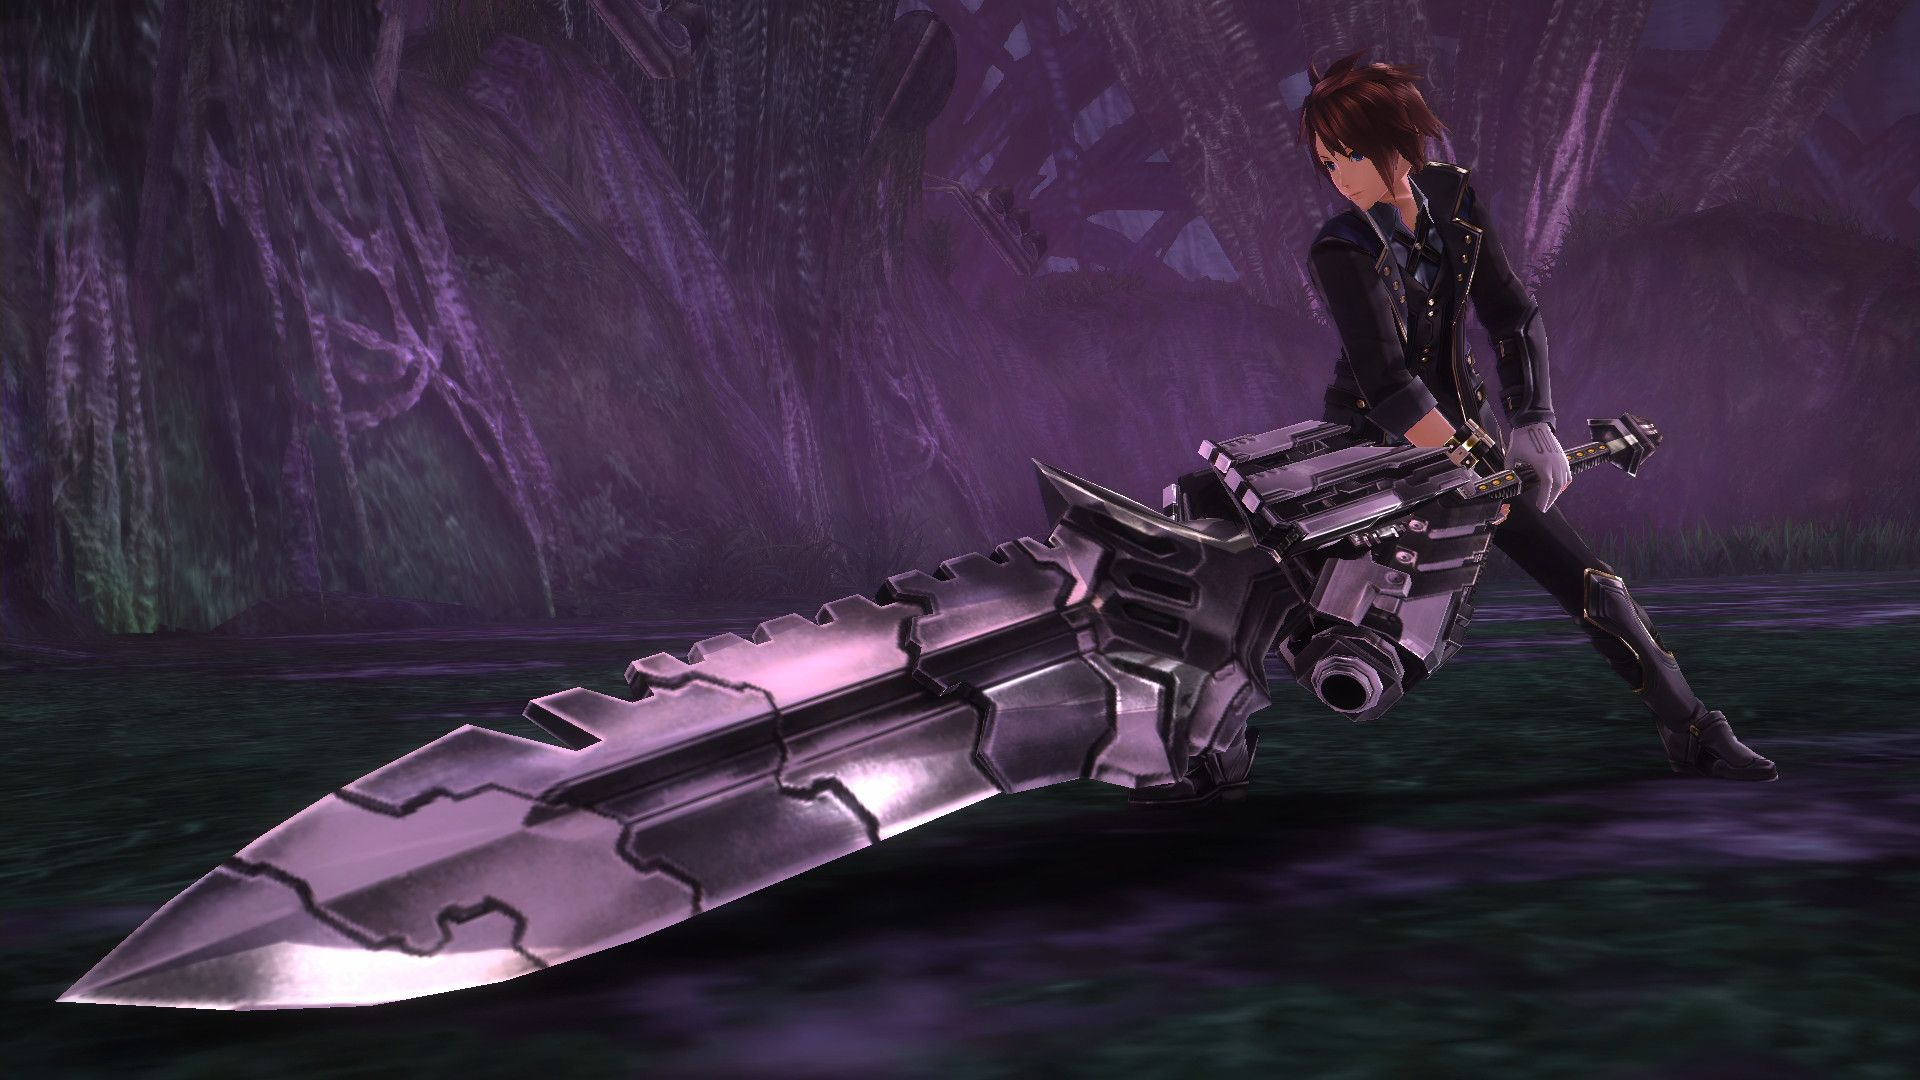 Pin by sazerac on Melee Weapon in 2019 | God eater 2, Sword, God